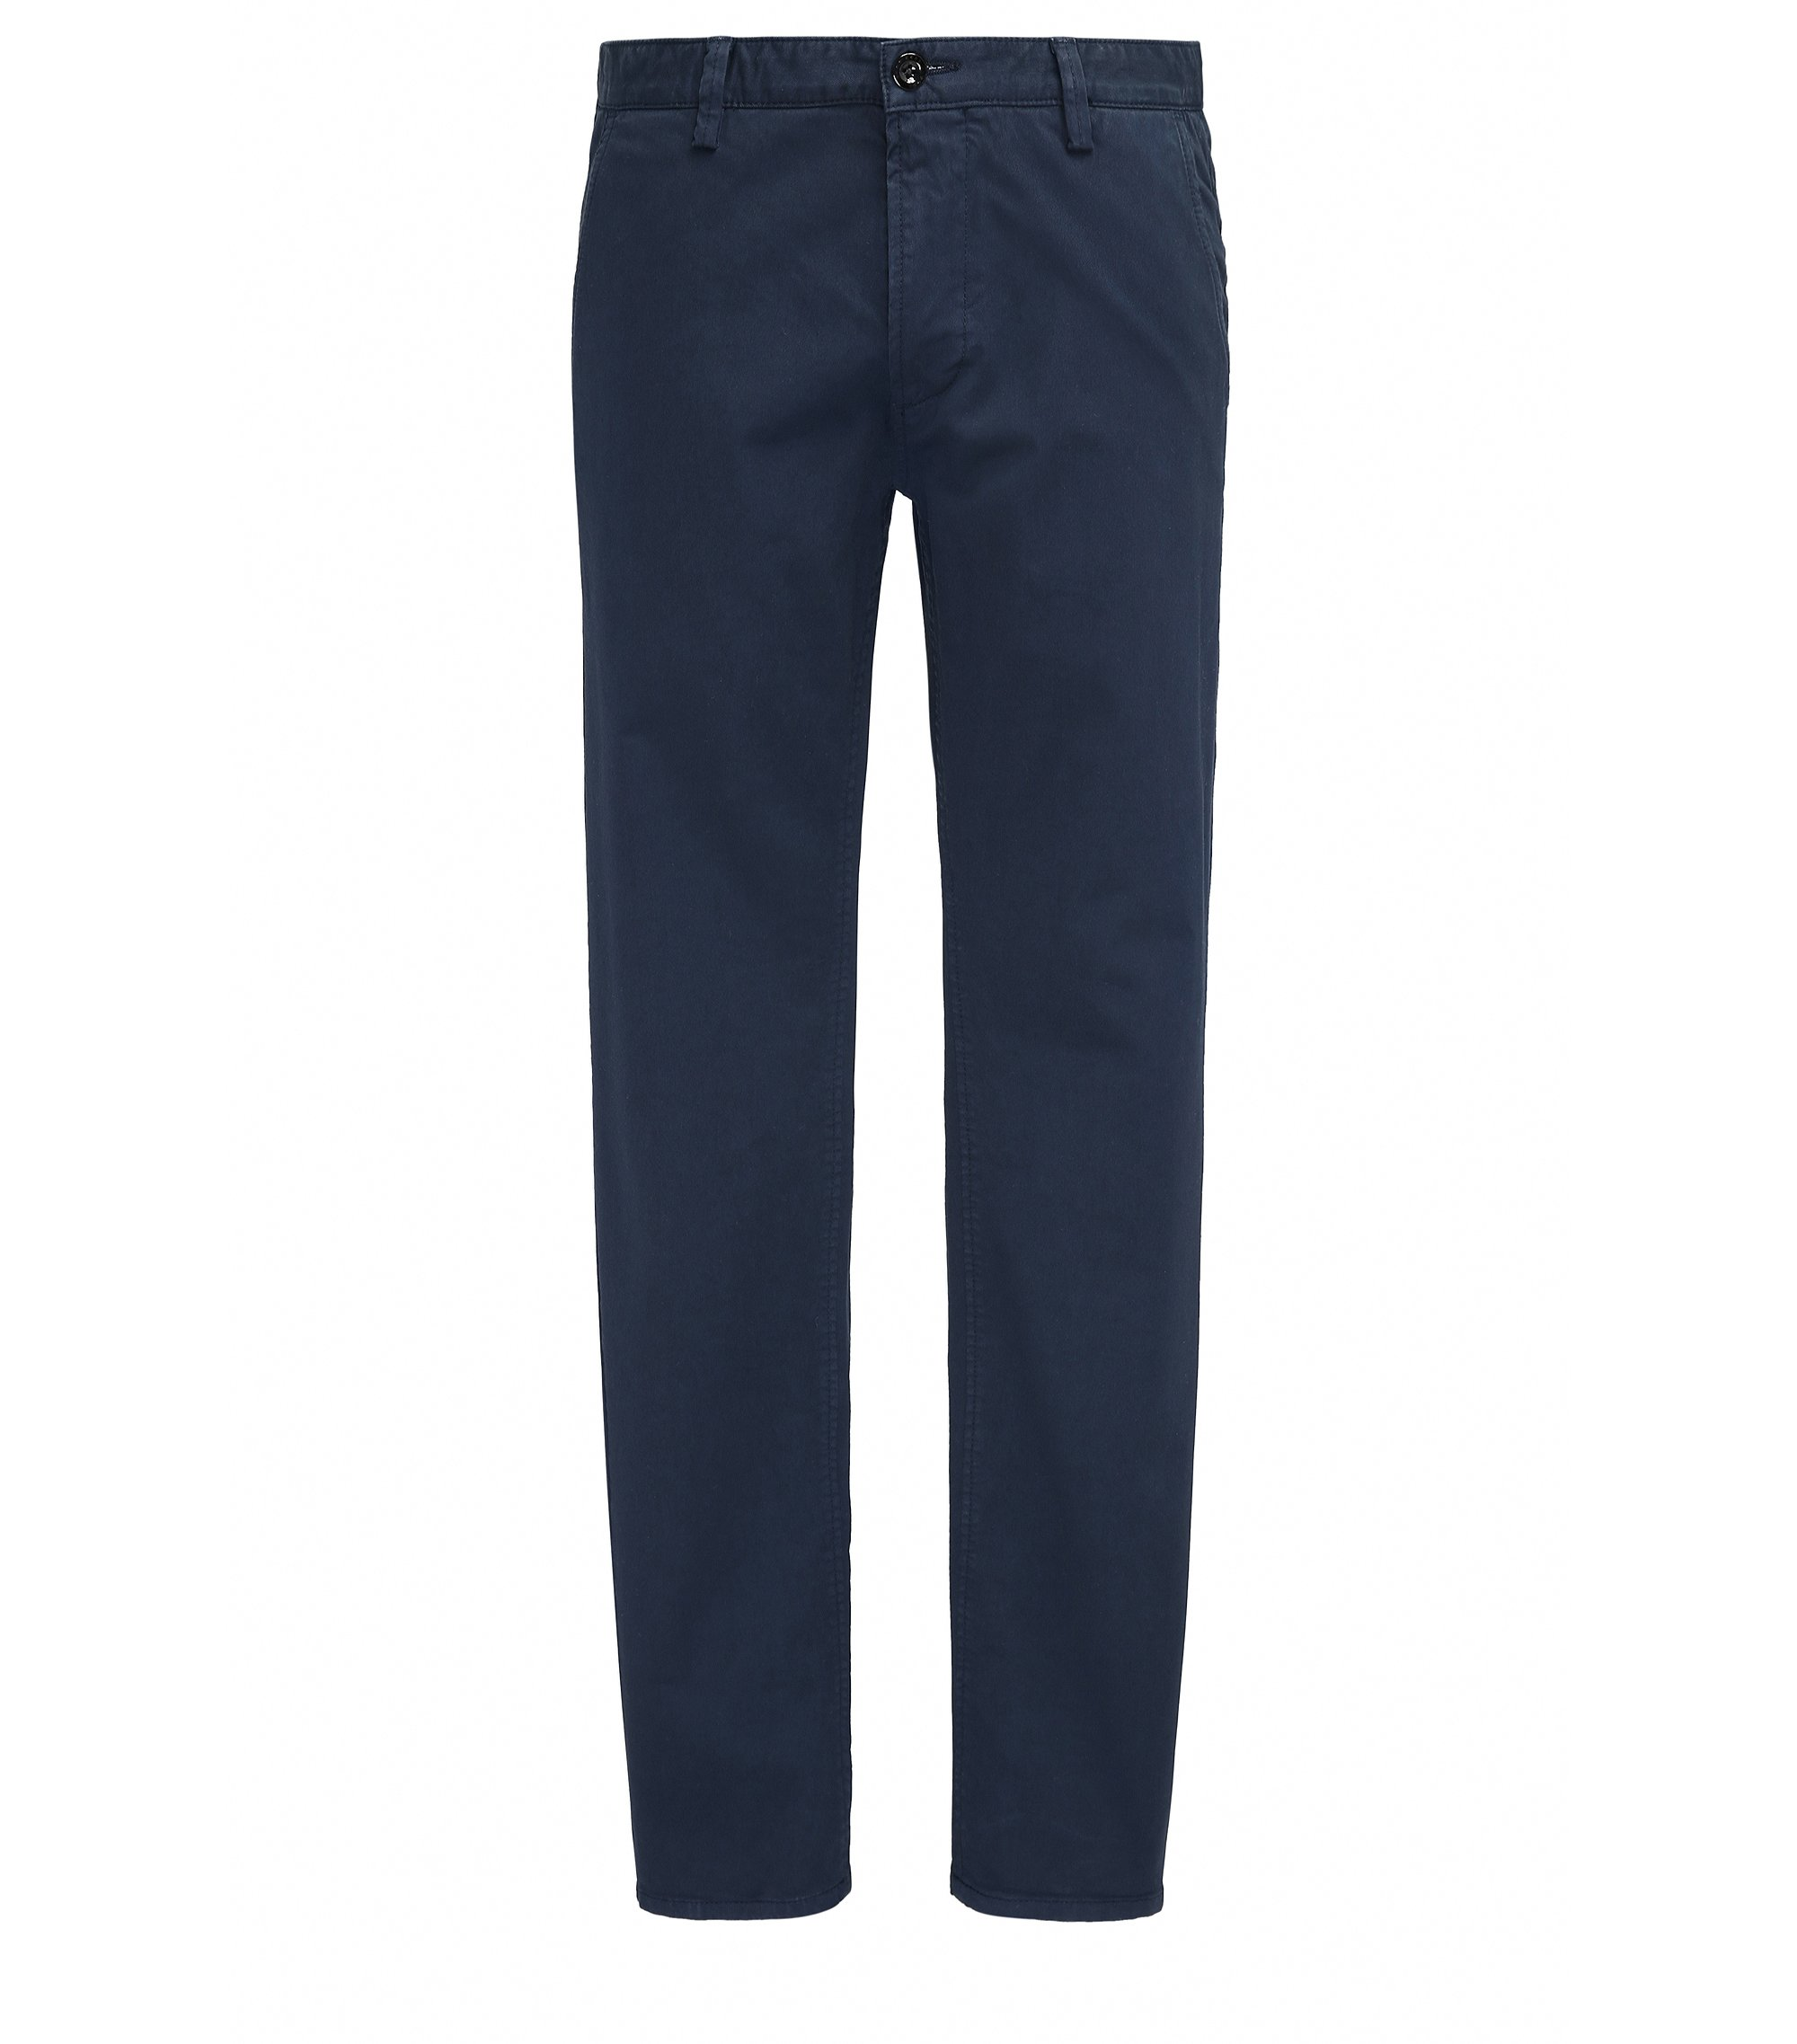 Pantalon Slim Fit en gabardine stretch, Bleu foncé